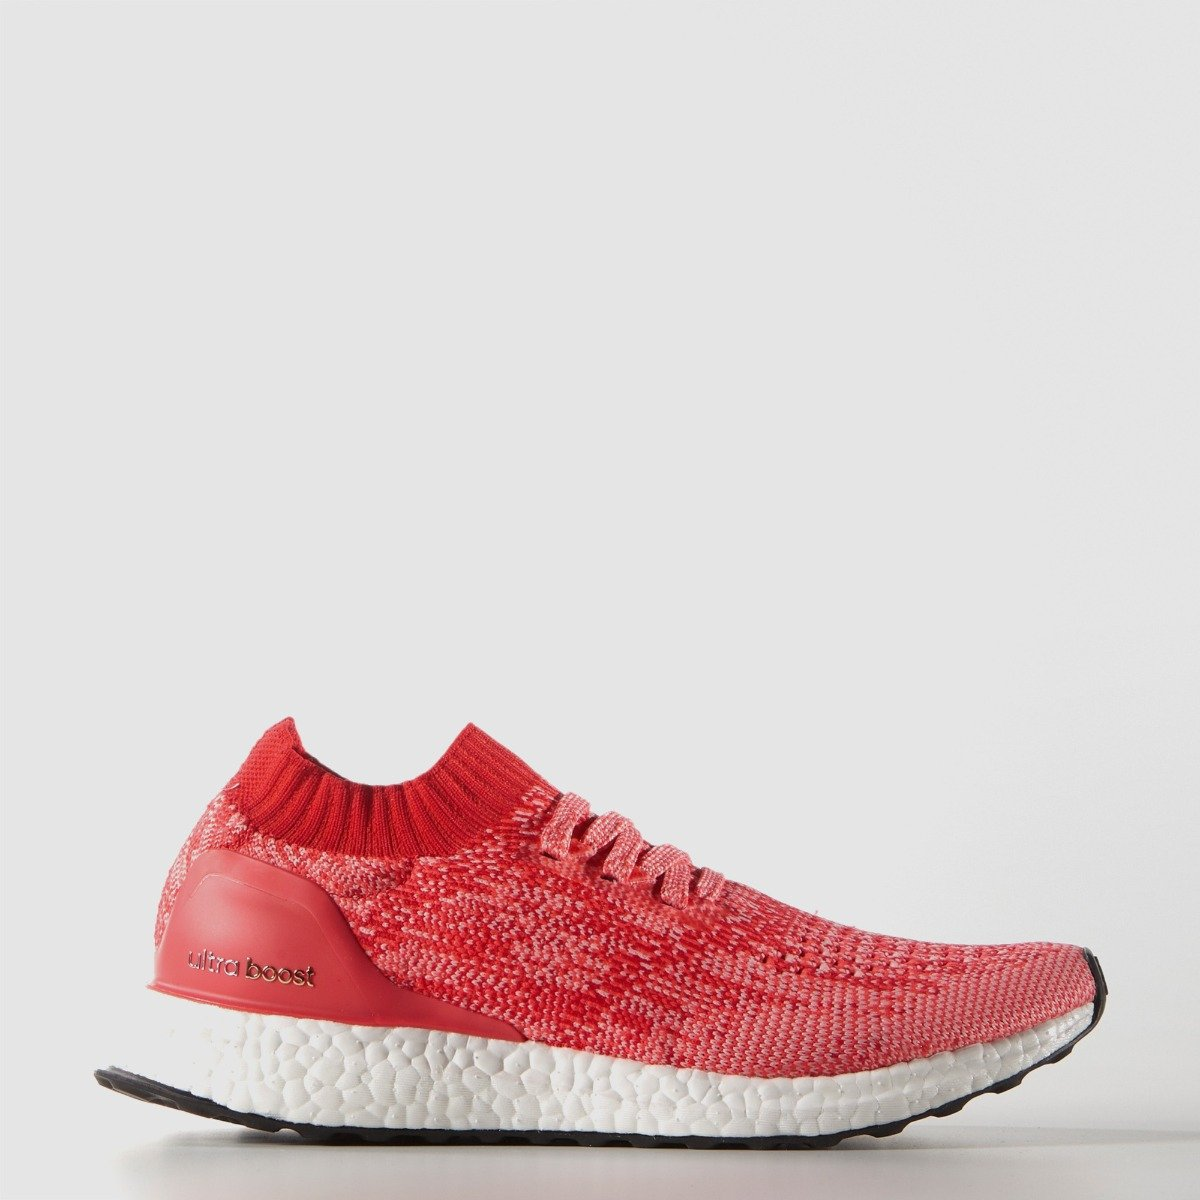 wholesale dealer e1491 10f85 adidas UltraBOOST X All Terrain Shoes Red BB3903 | Chicago ...